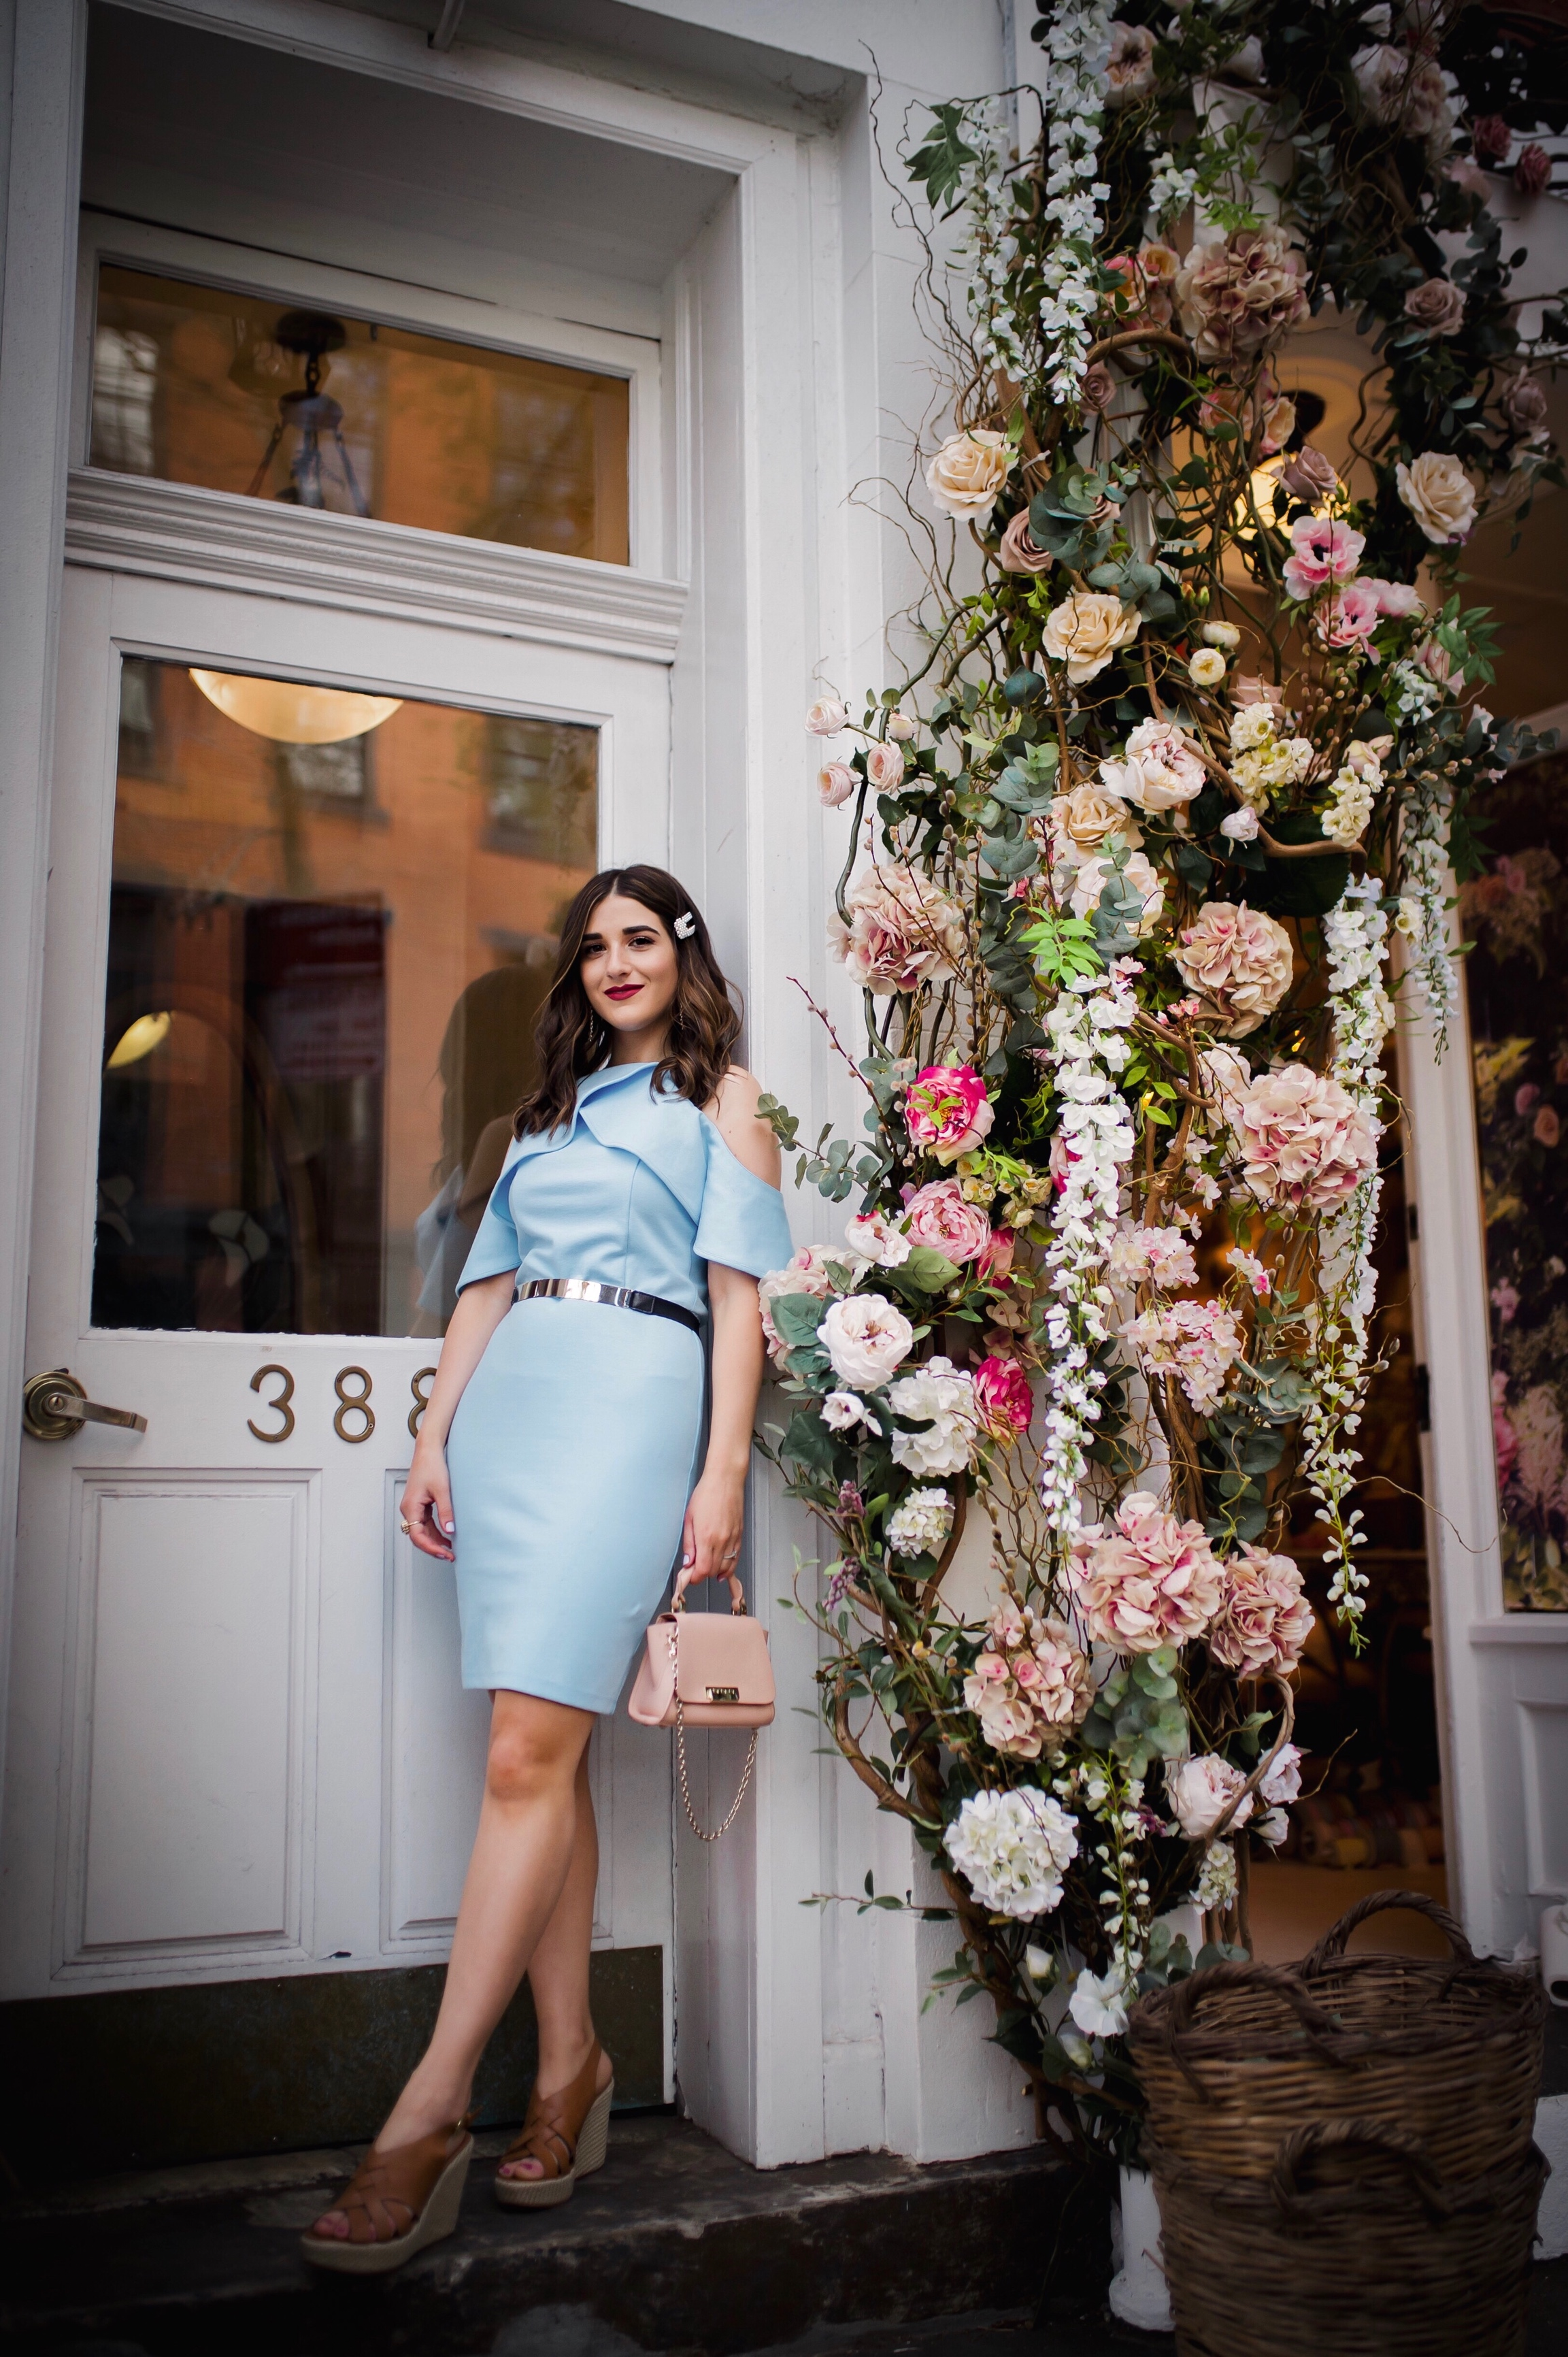 Styling XOXO For Spring Esther Santer Fashion Blog NYC Street Style Blogger Outfit OOTD Trendy Shopping Baby Blue Cold Shoulder Dress Espadrille Wedges Tan Girl Women Barette Pearl Clip Flowers Pretty Beautiful Pink Bag Shoes Shopping Belt Accessories.JPG